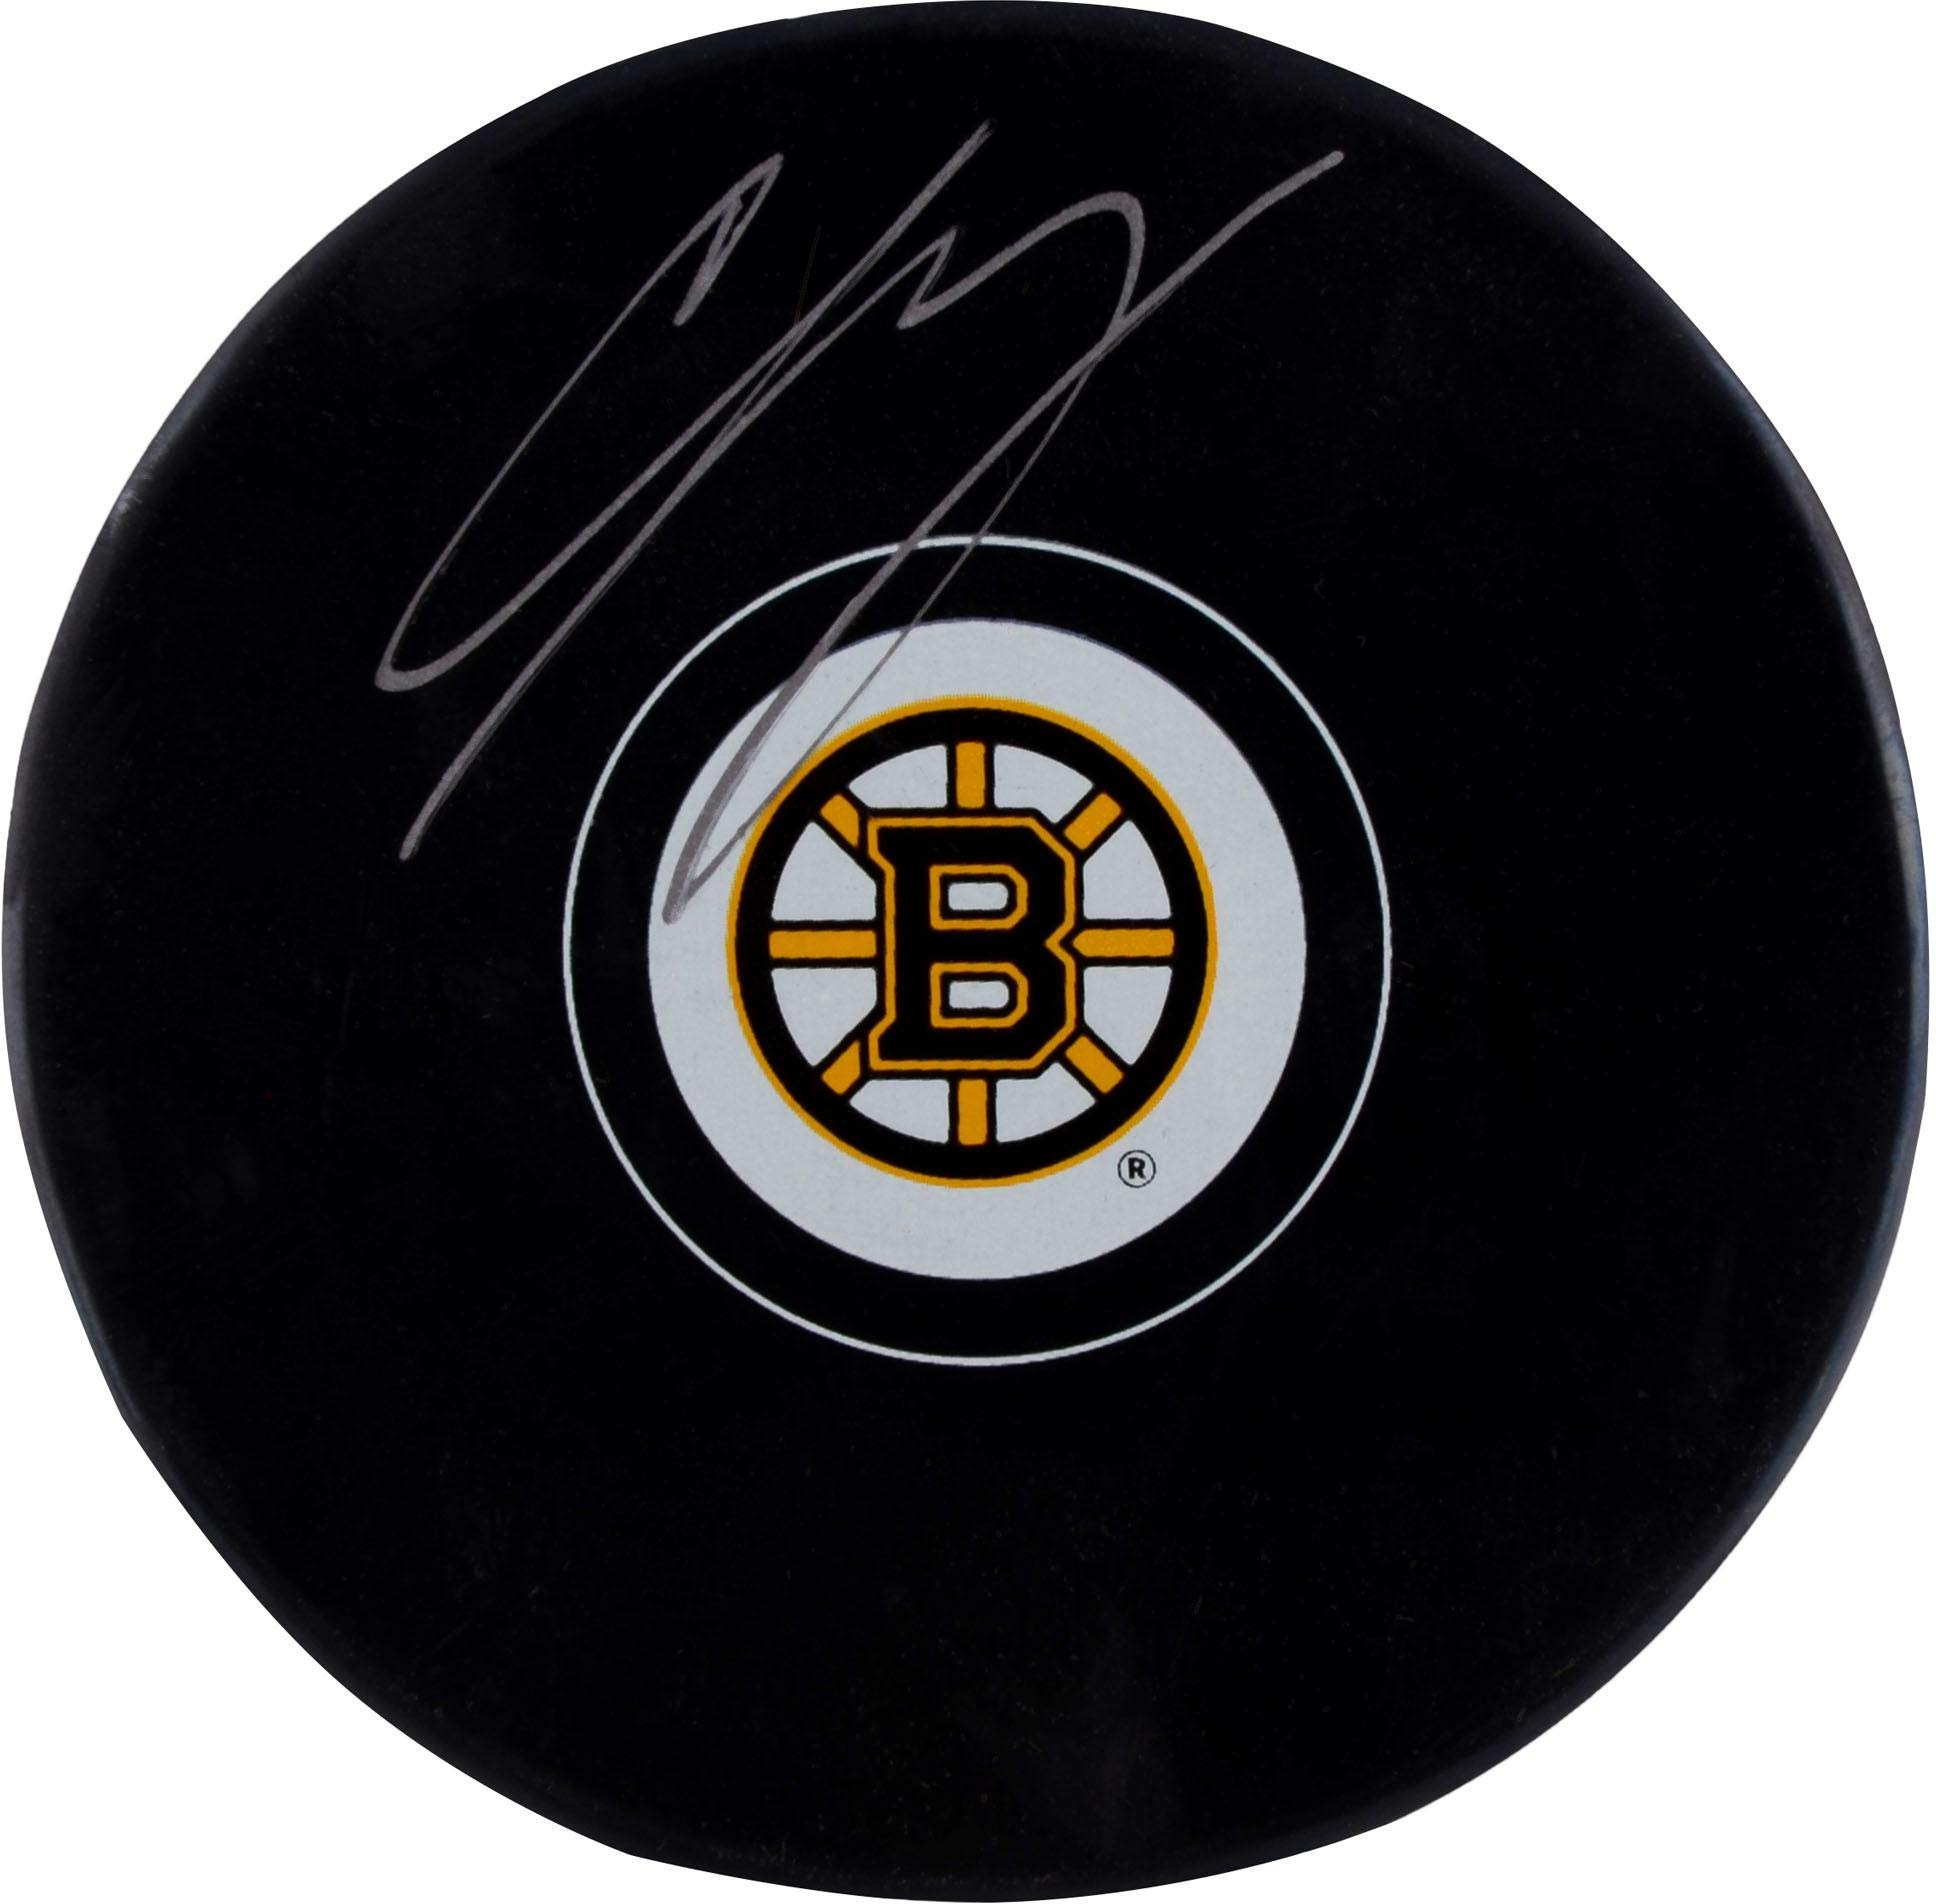 Charlie McAvoy Boston Bruins Autographed Hockey Puck Fanatics Authentic Certified Autographed NHL Pucks